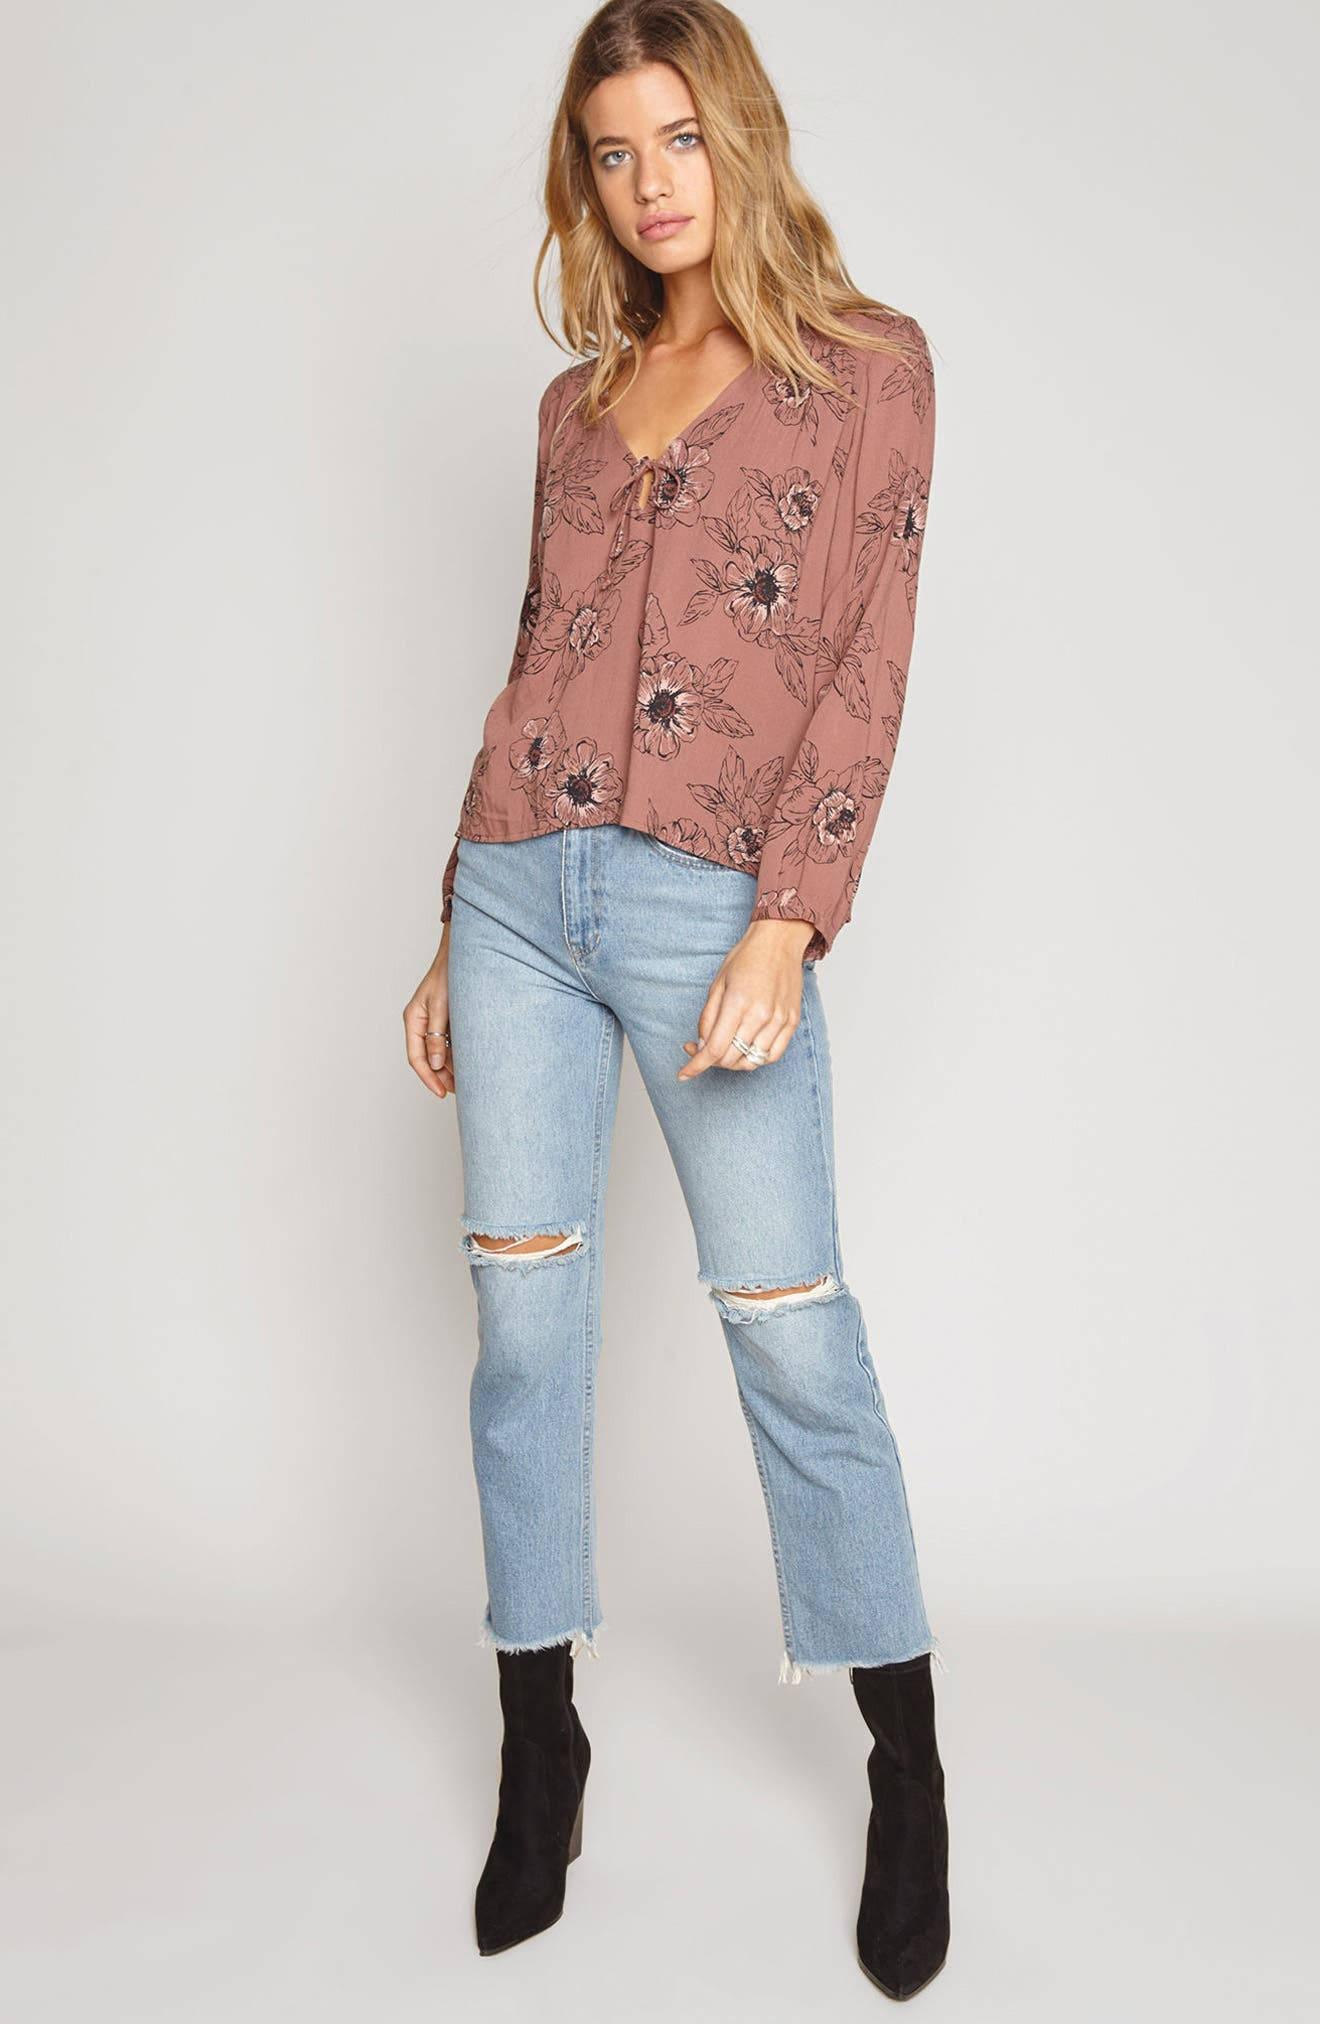 Bleeker Blouse,                             Alternate thumbnail 2, color,                             Moccasin